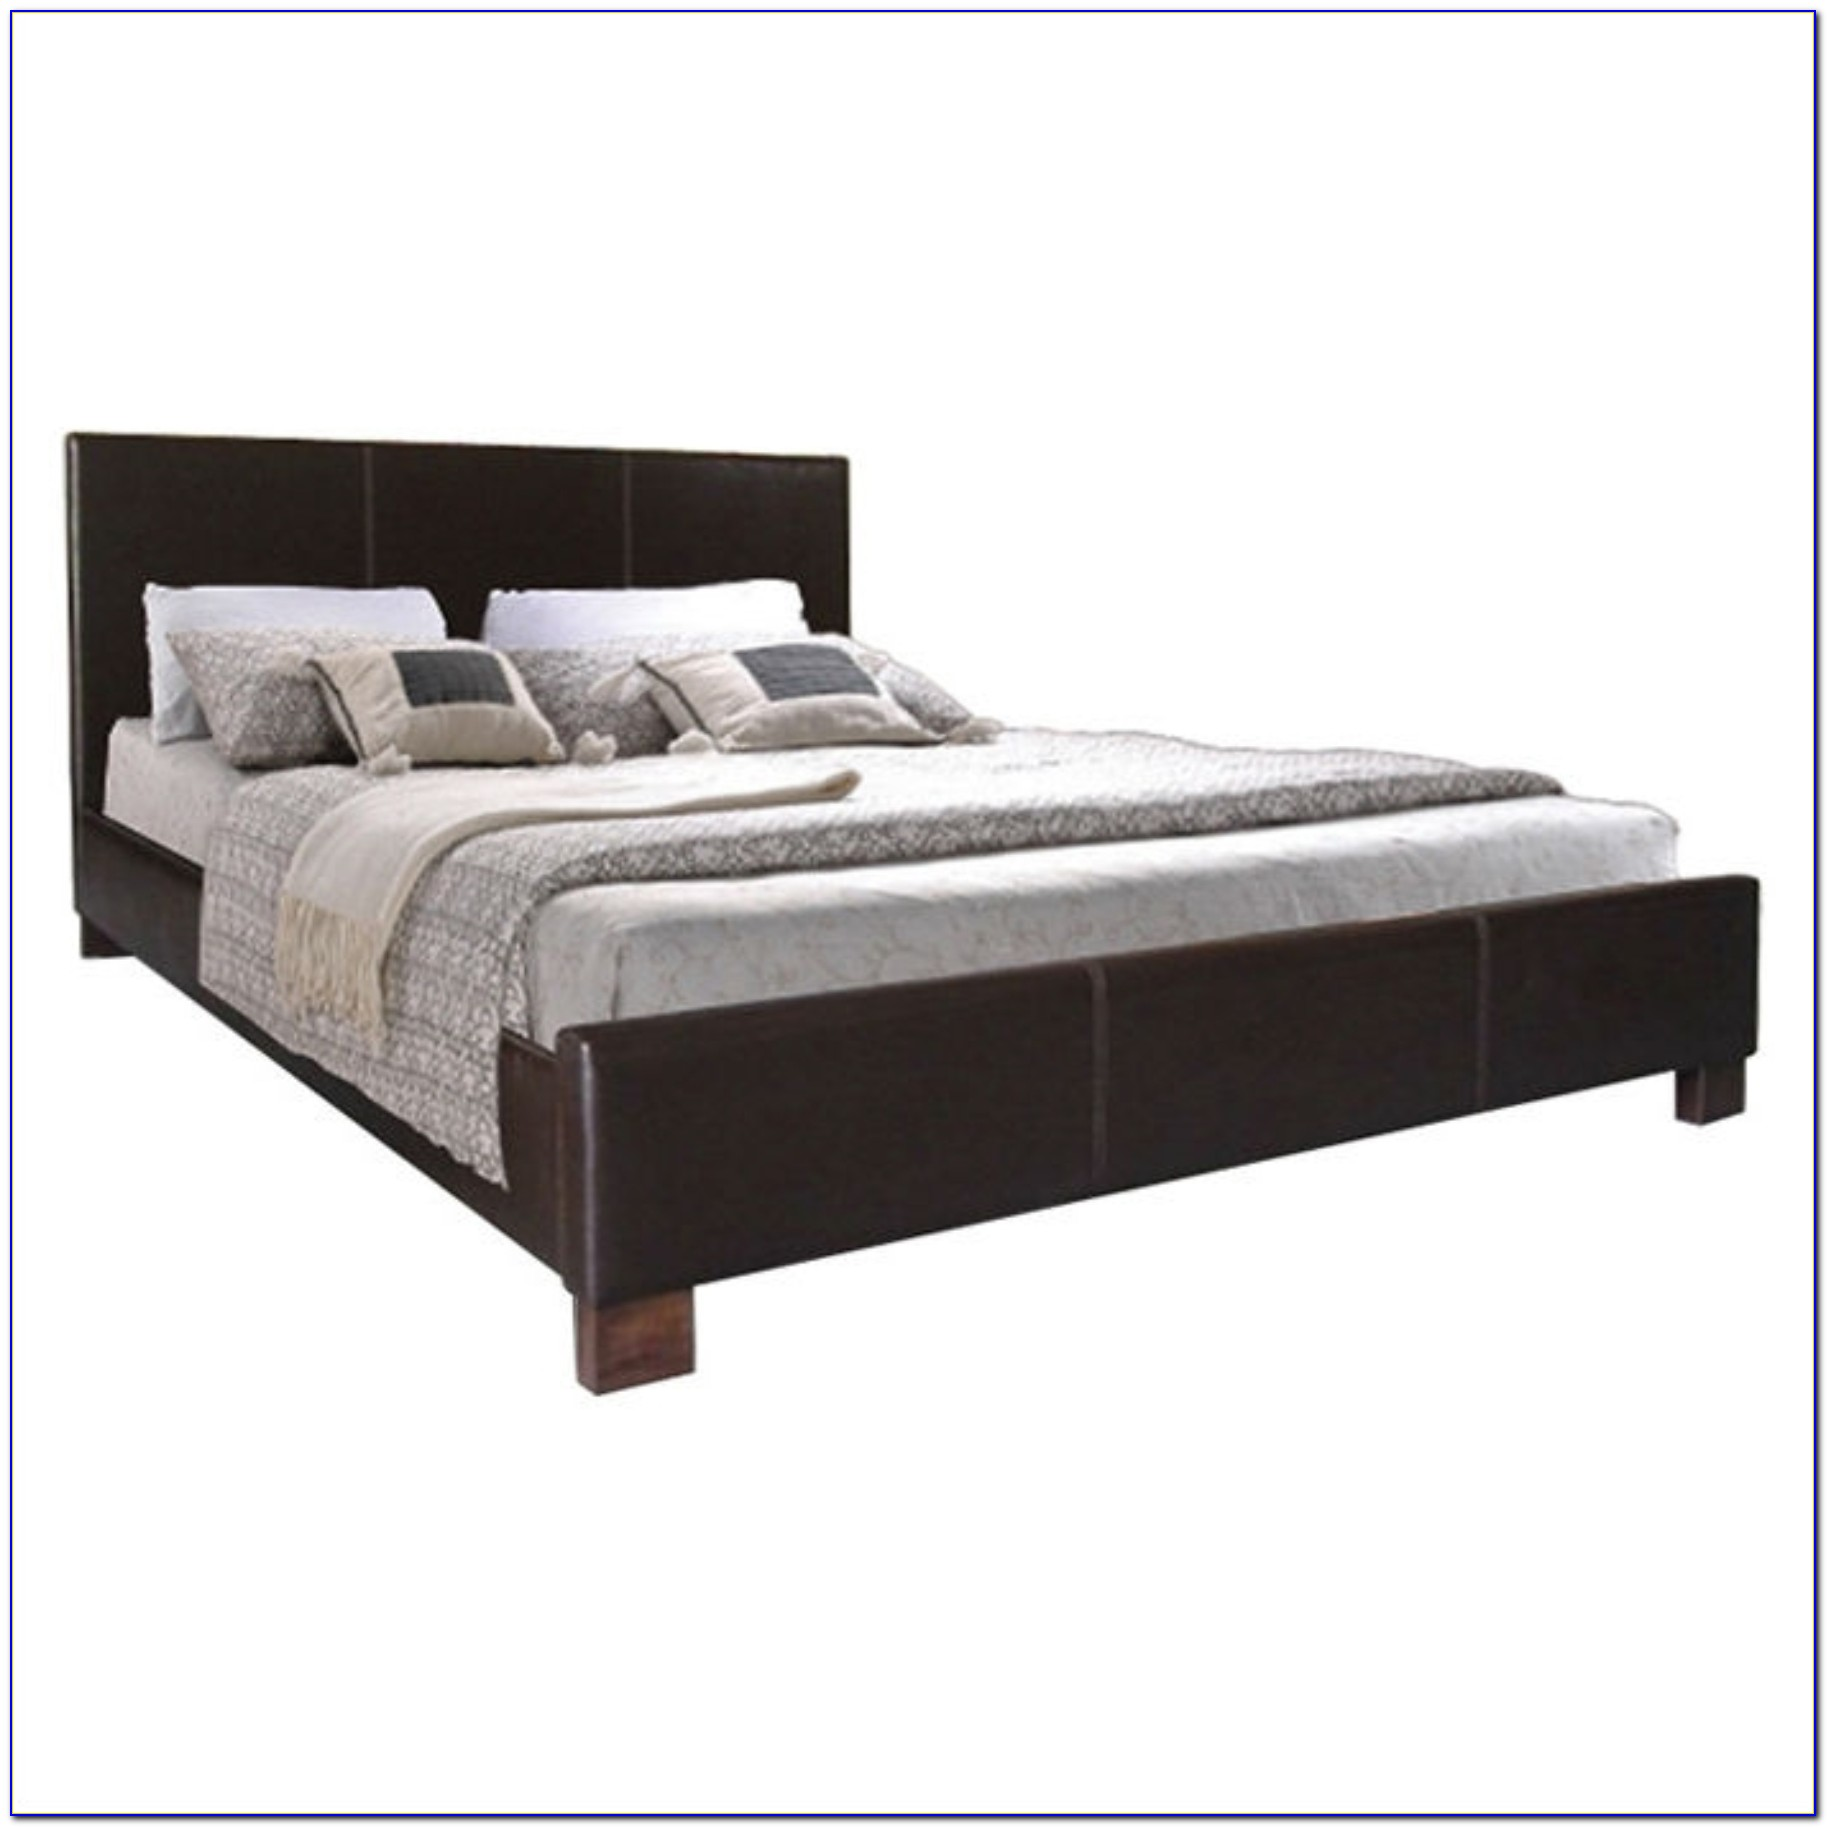 Xl Twin Bed Frame Dimensions